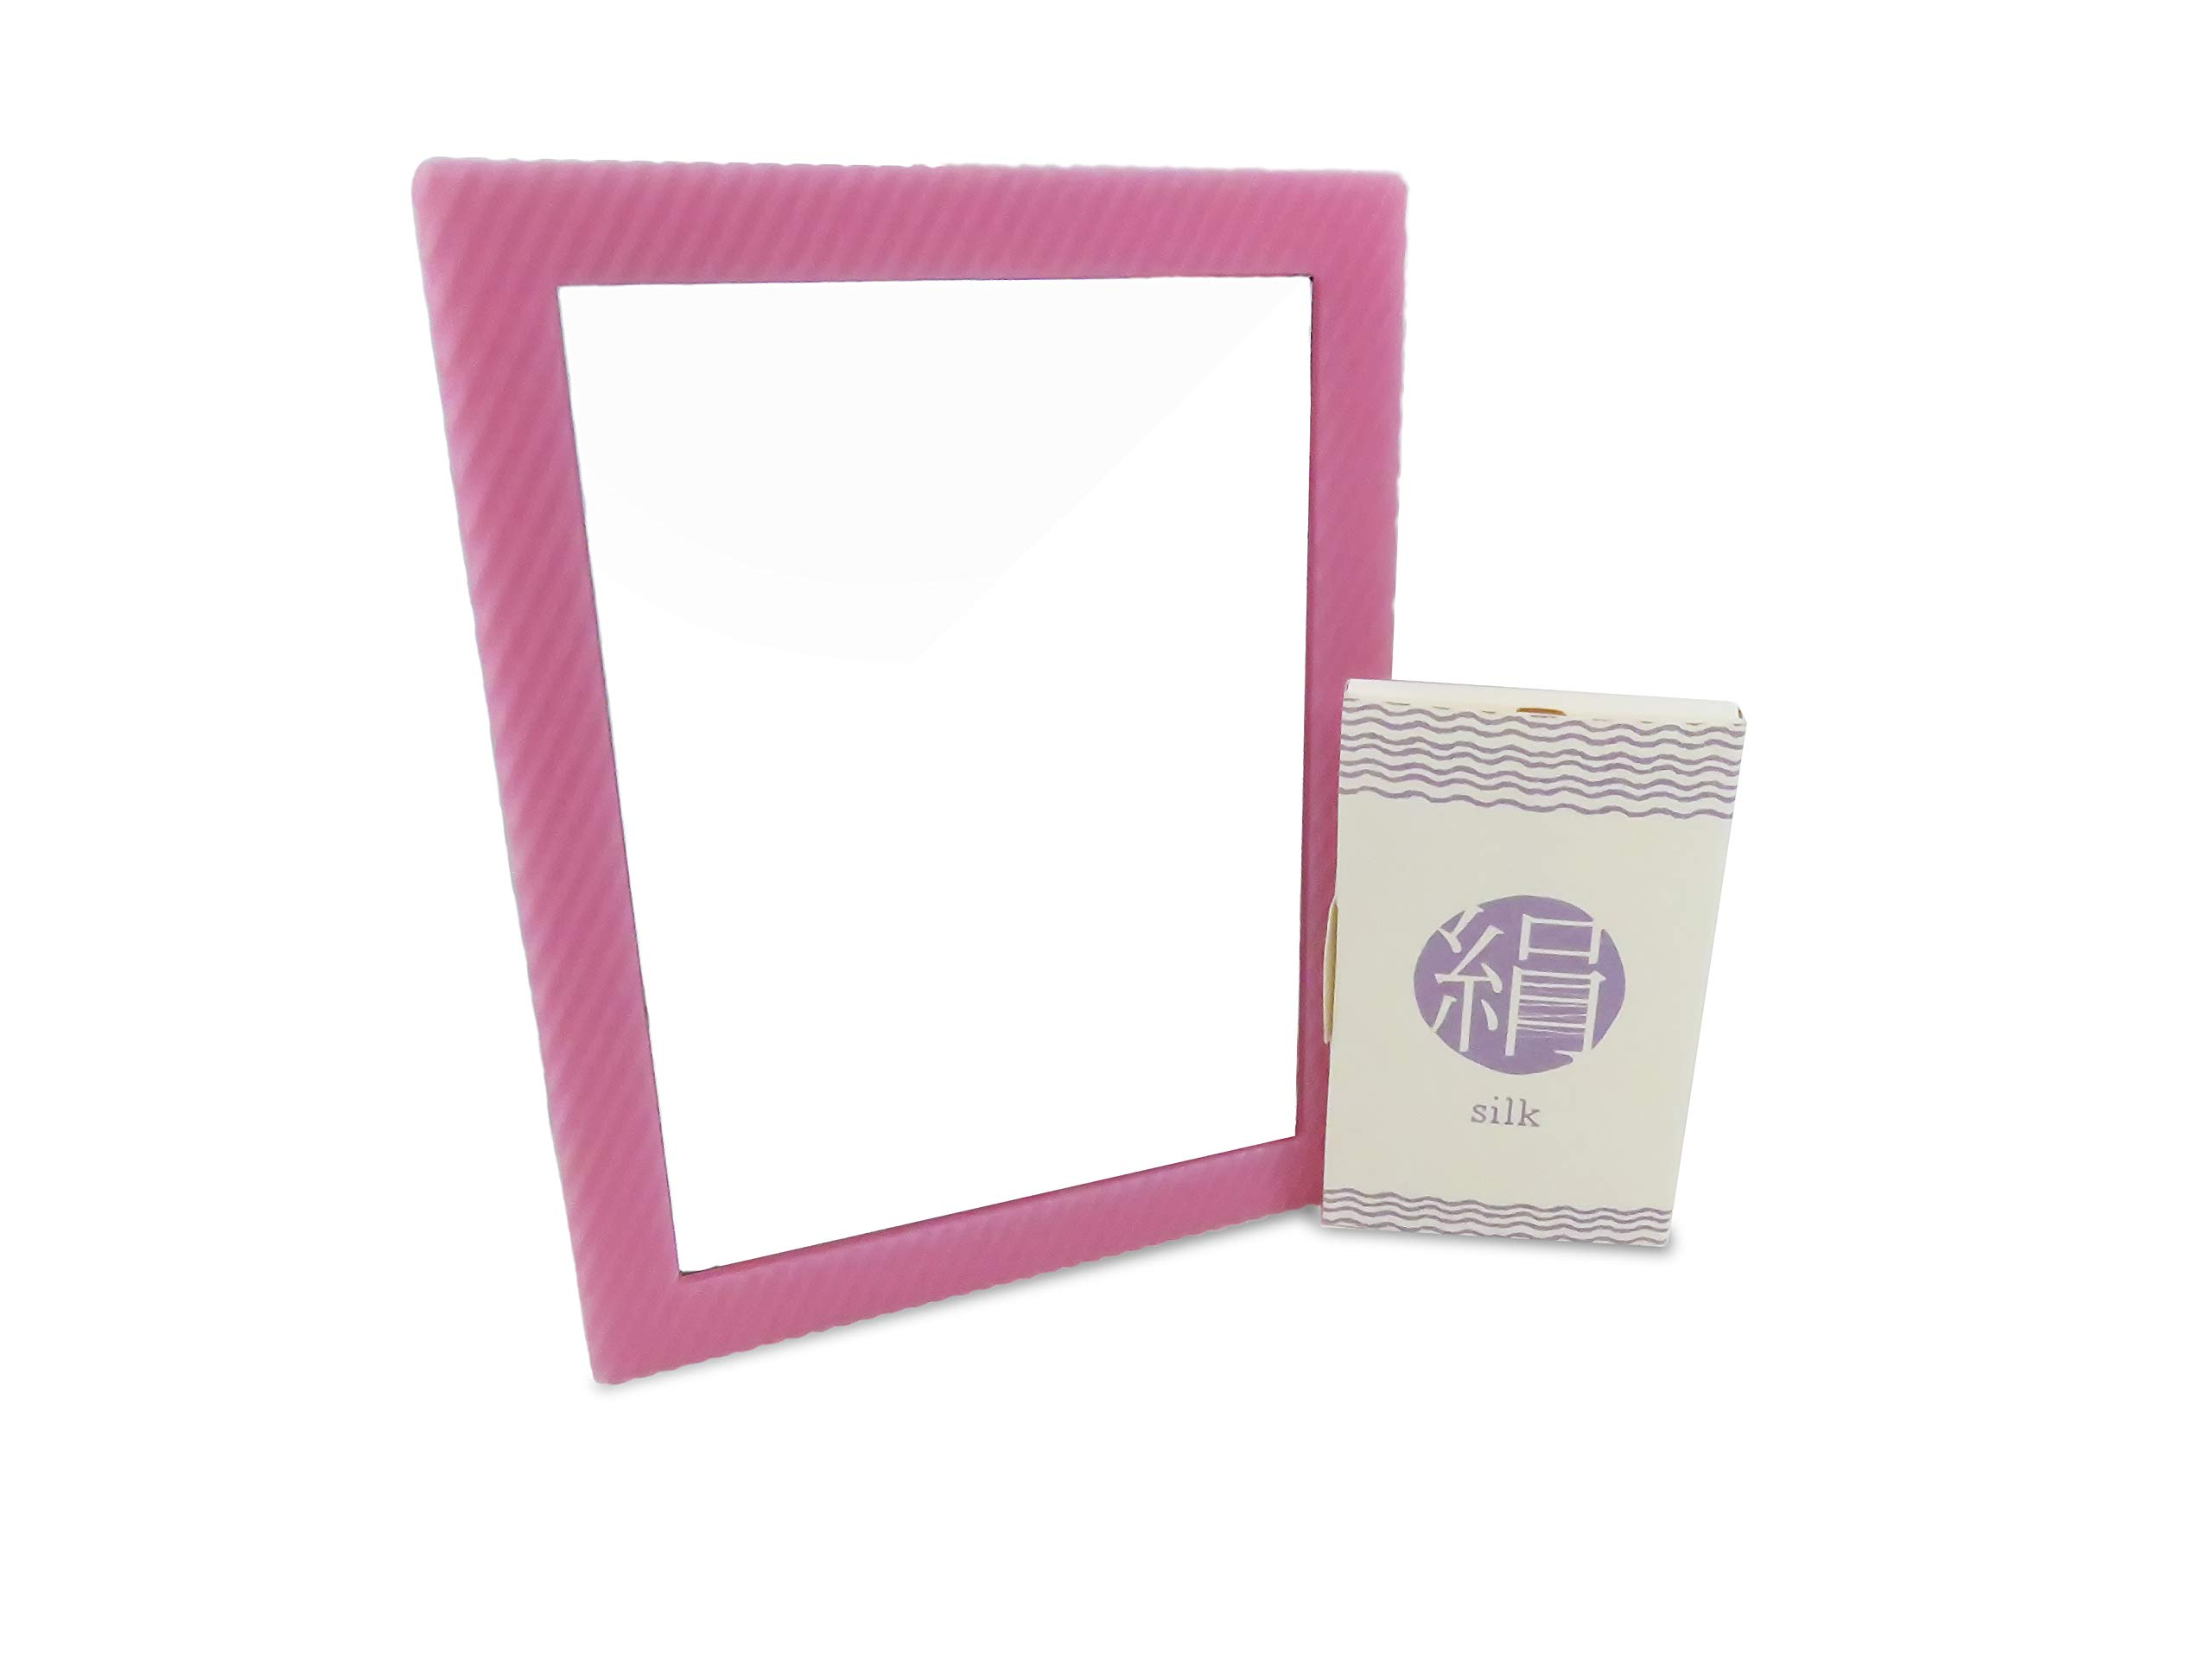 Locker Glass Mirror Rectangular Pink 6.25'' x 4.75'' Magnetic with Silk Blotting Absorbing Oil Paper 100 Sheets (2 Piece Set)